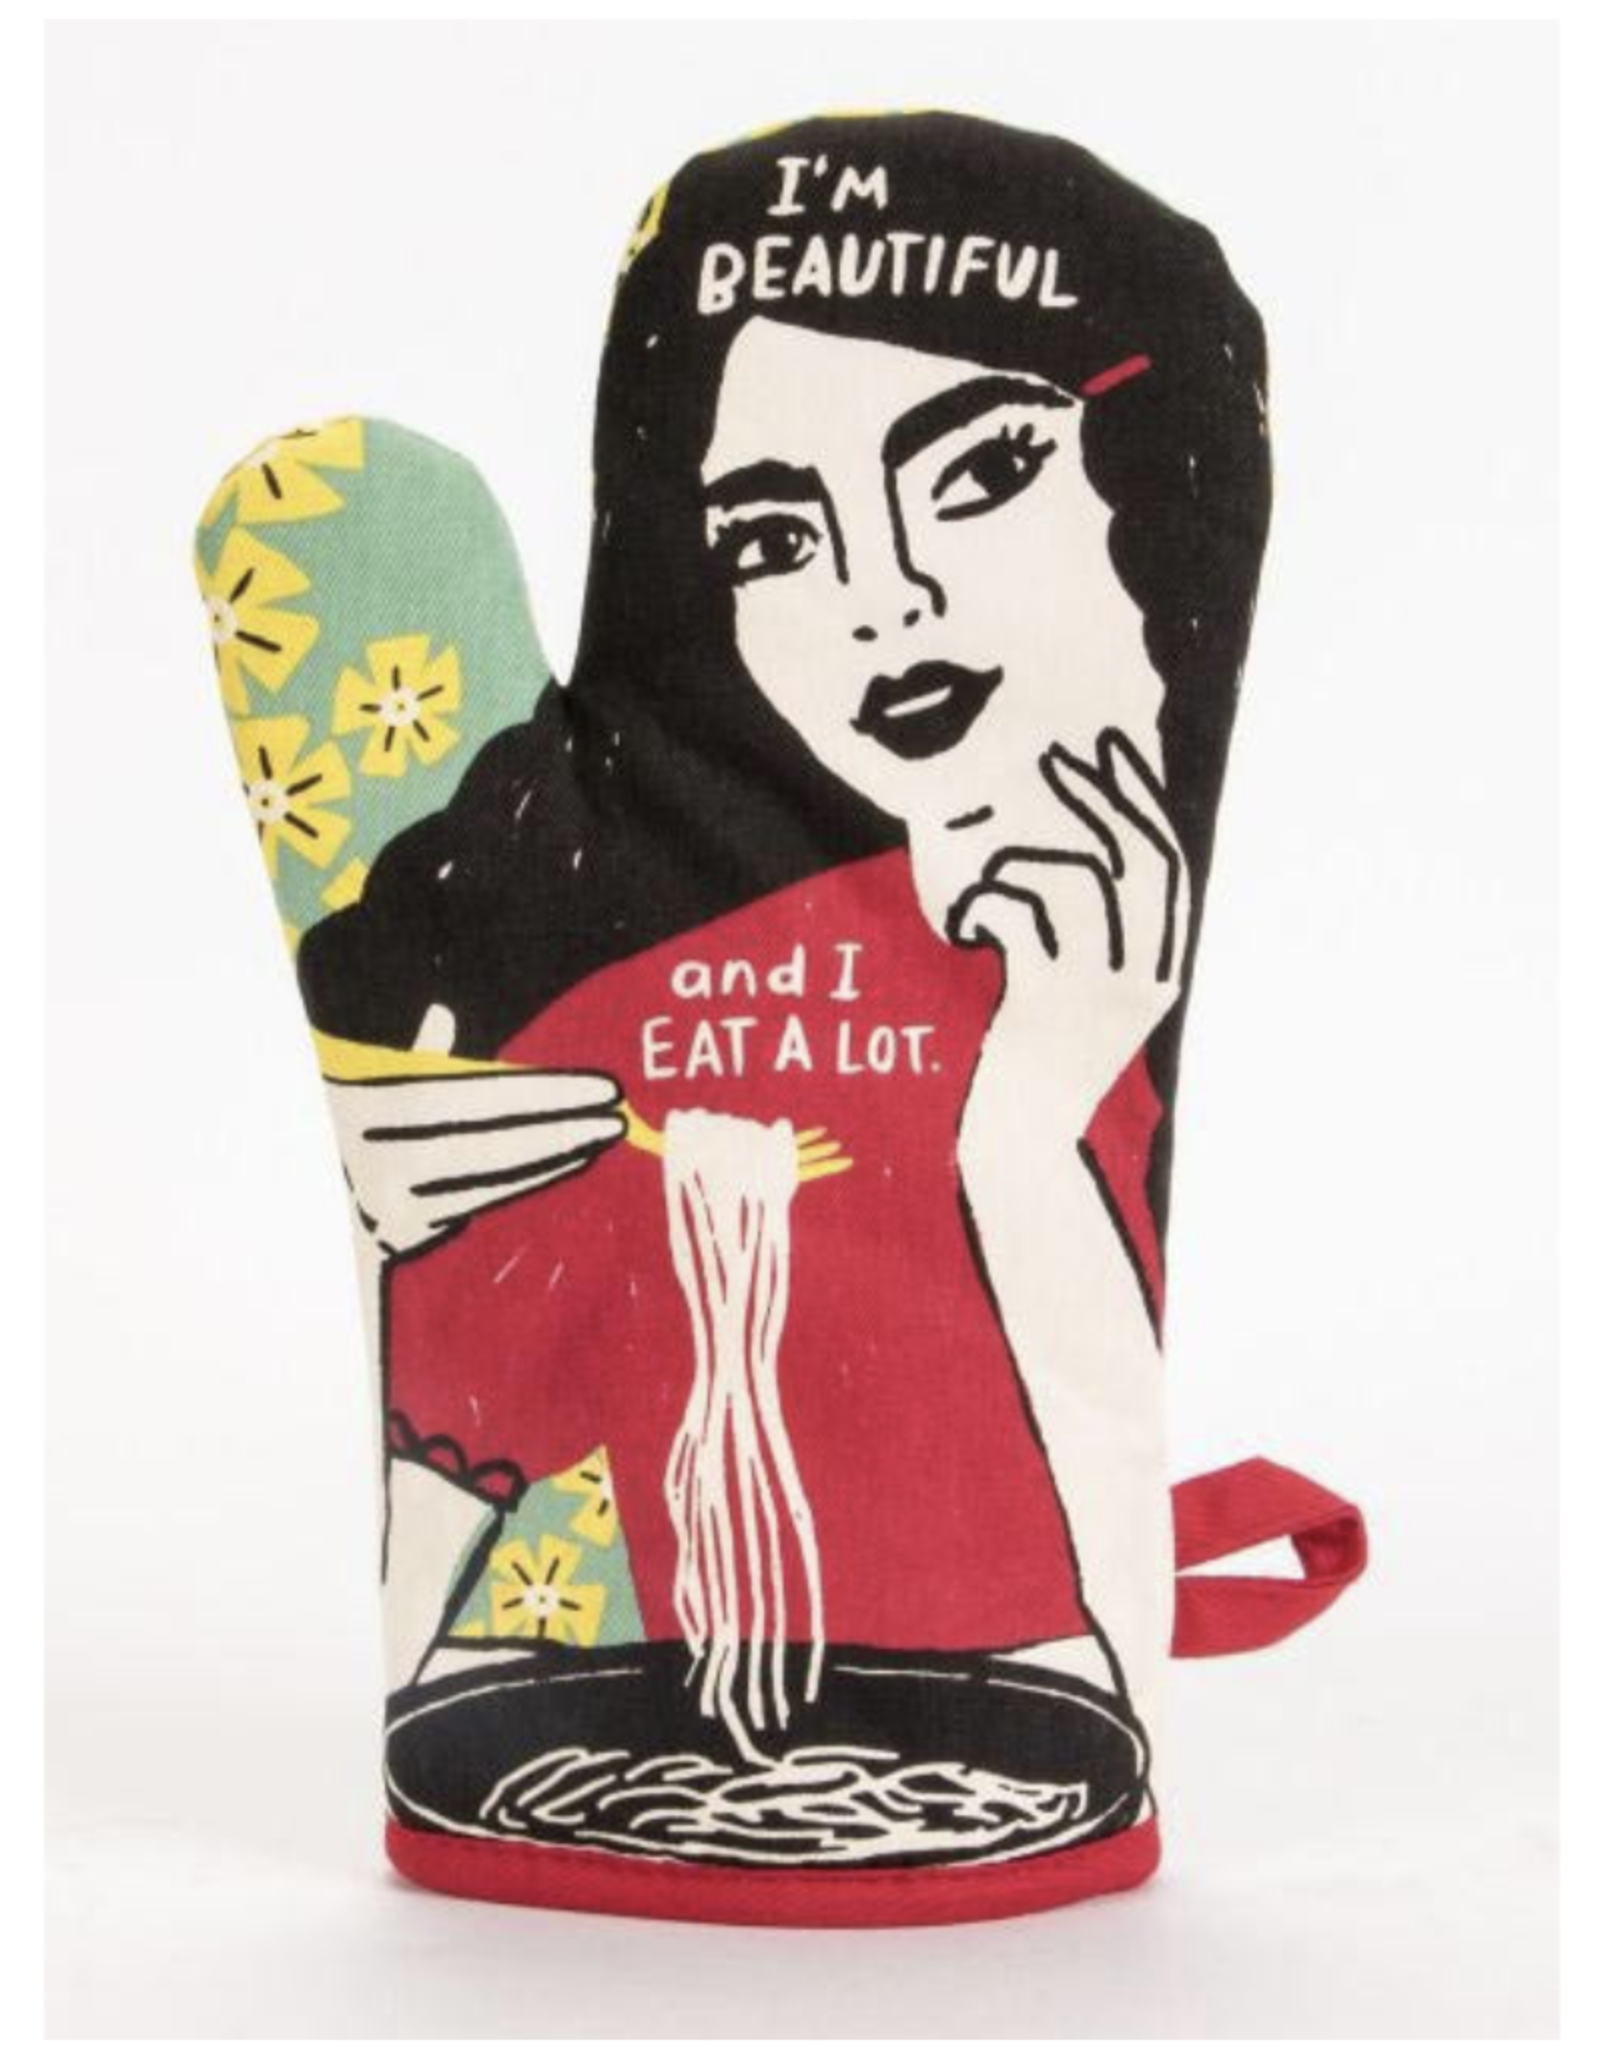 I'm Beautiful and eat a lot oven mitt